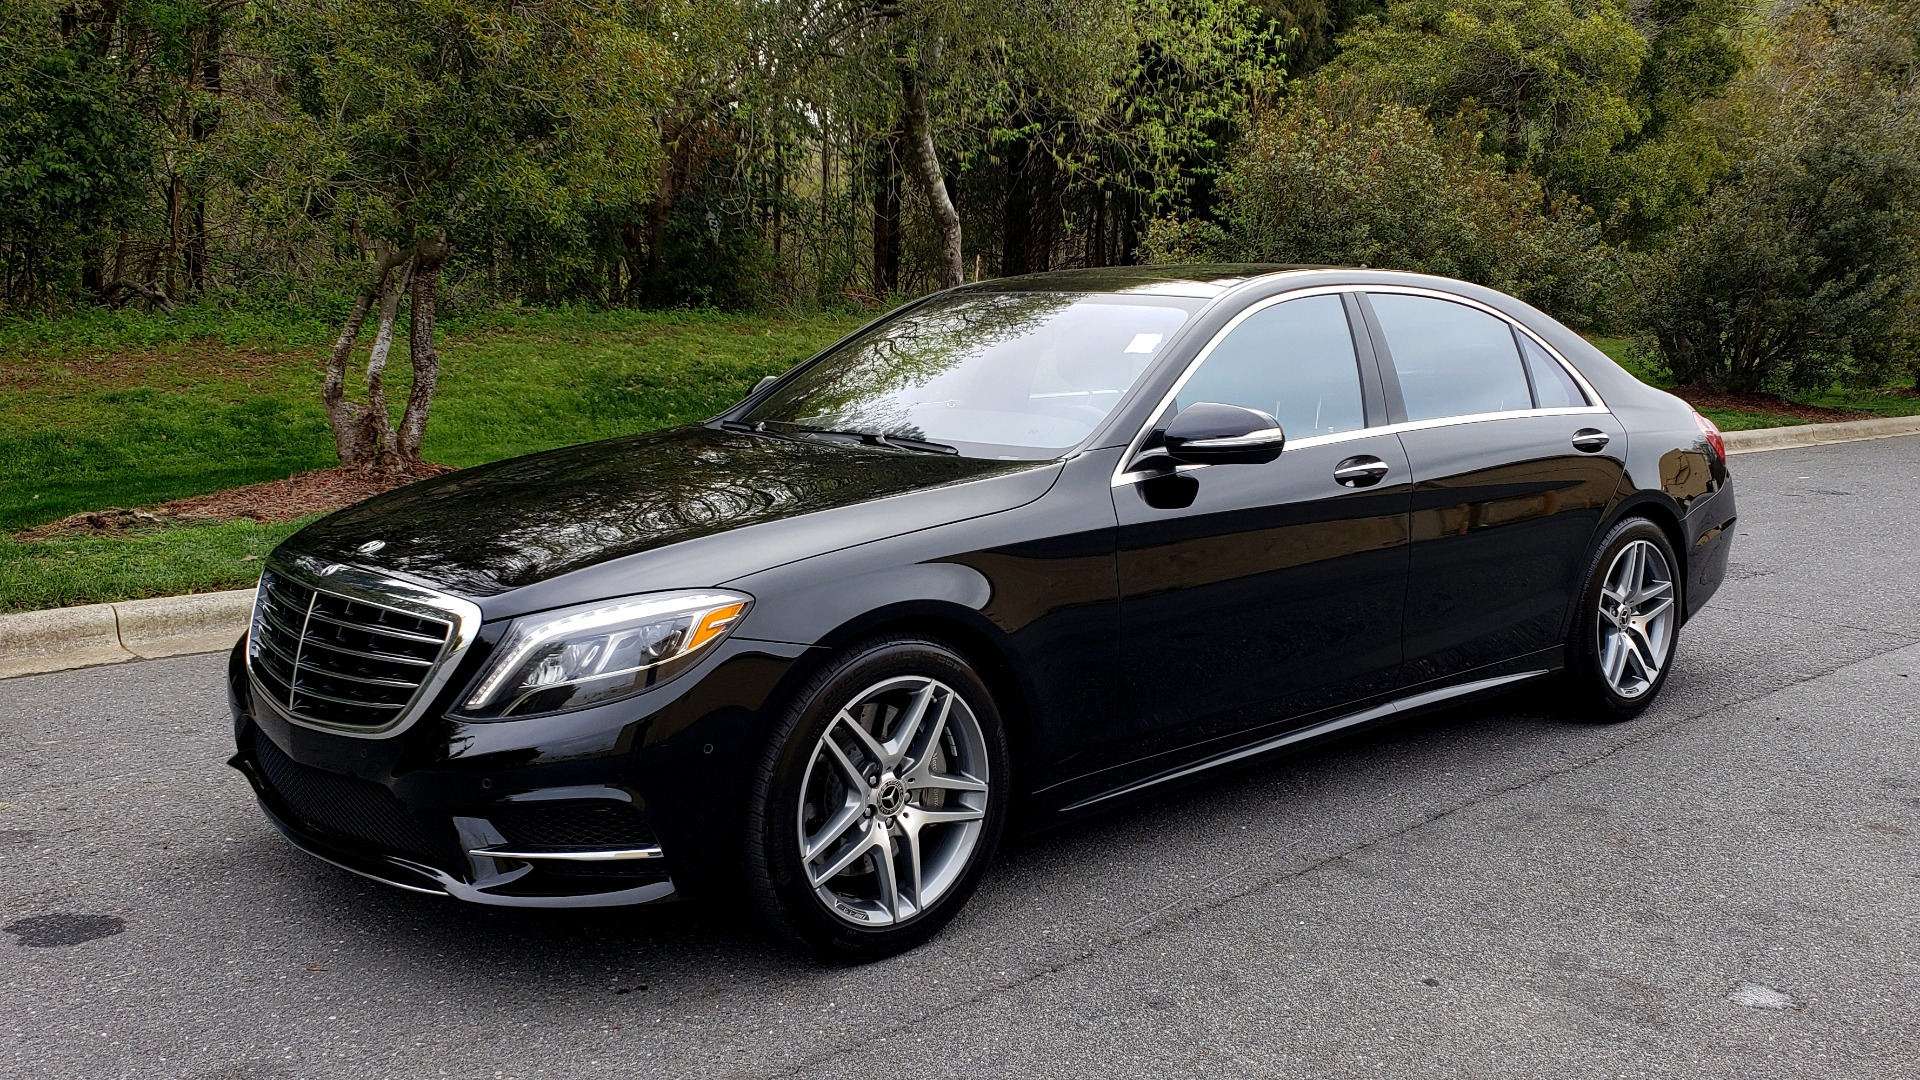 Used 2017 Mercedes-Benz S-CLASS S 550 4MATIC SPORT / PREM PKG / WARMTH & COMFORT / KEYLESS-GO for sale Sold at Formula Imports in Charlotte NC 28227 1